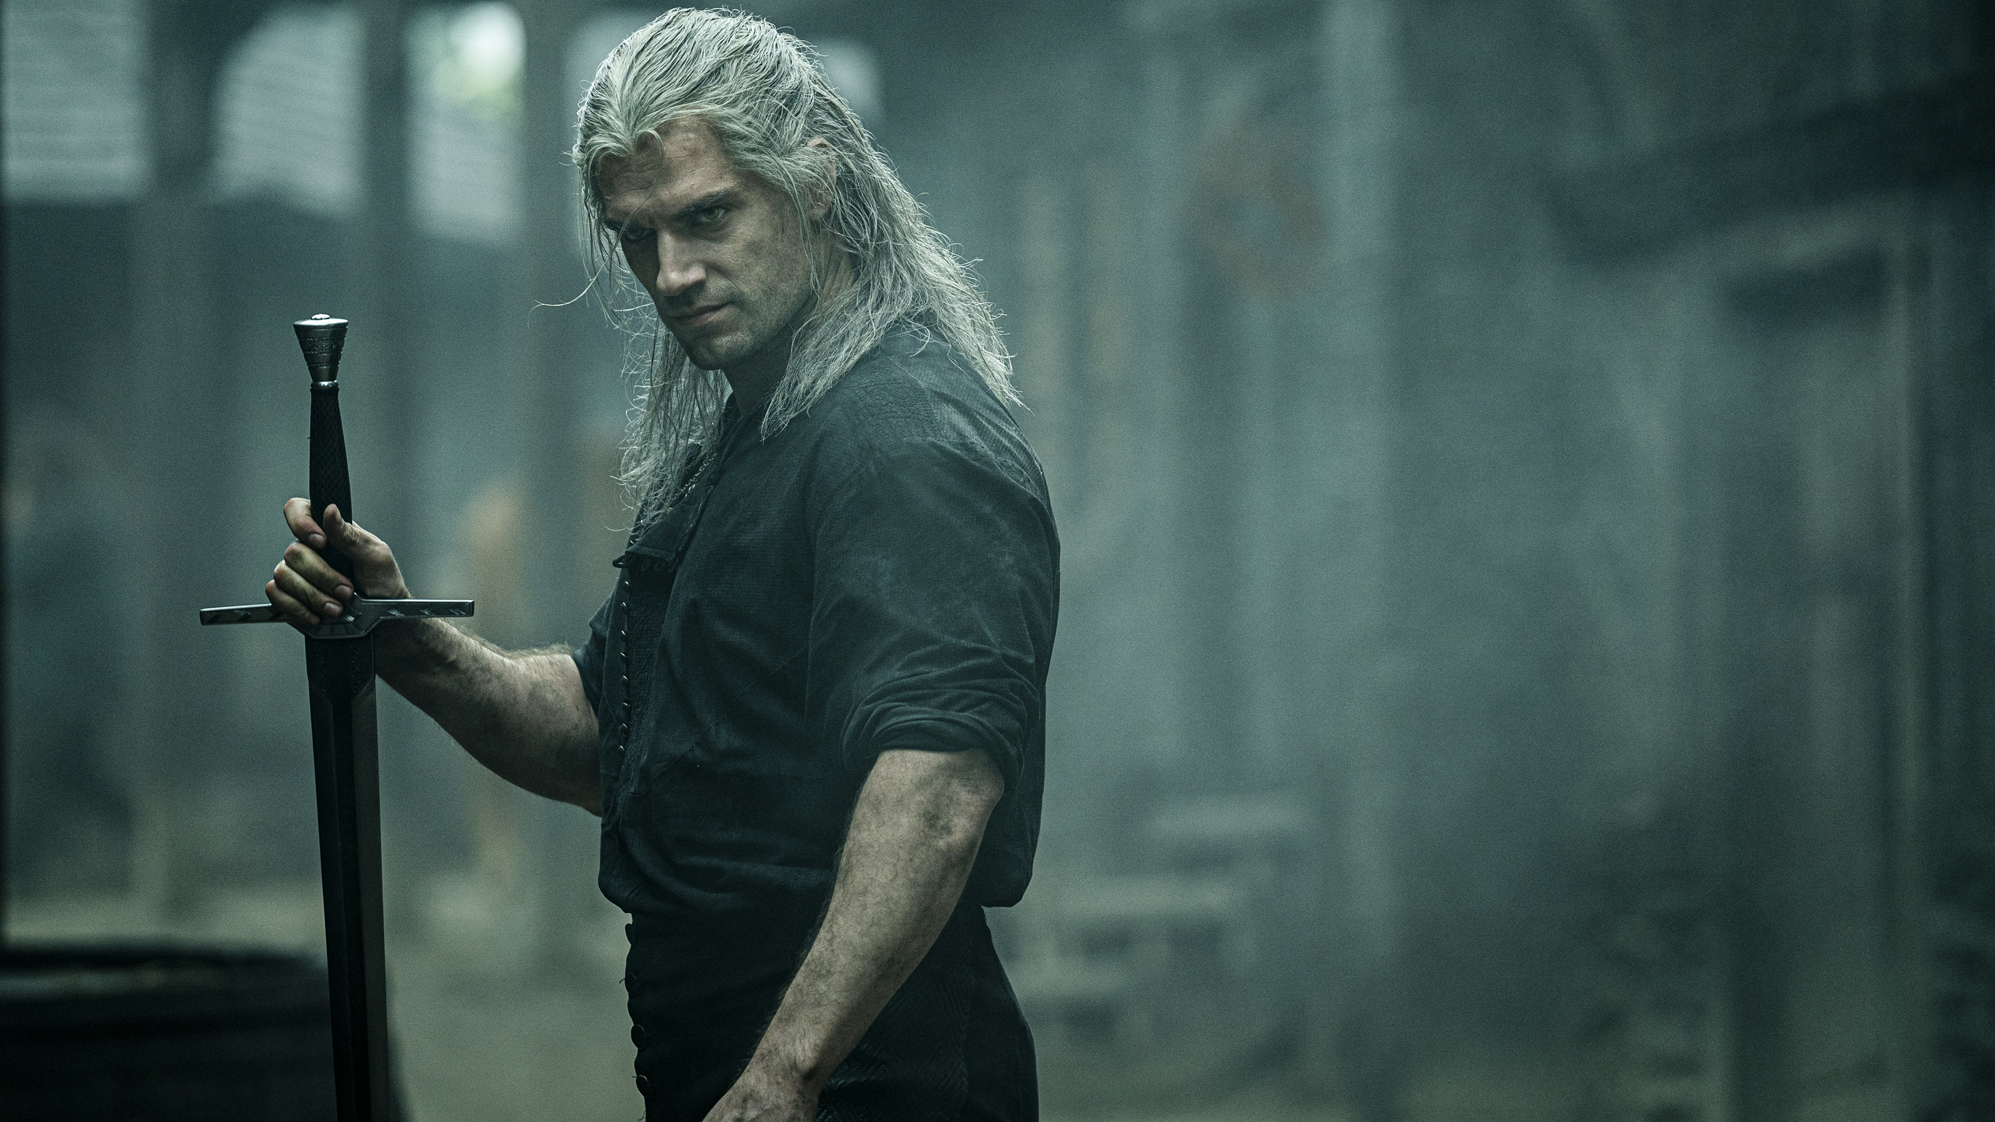 The Witcher season 2: release date, story details, and what we know